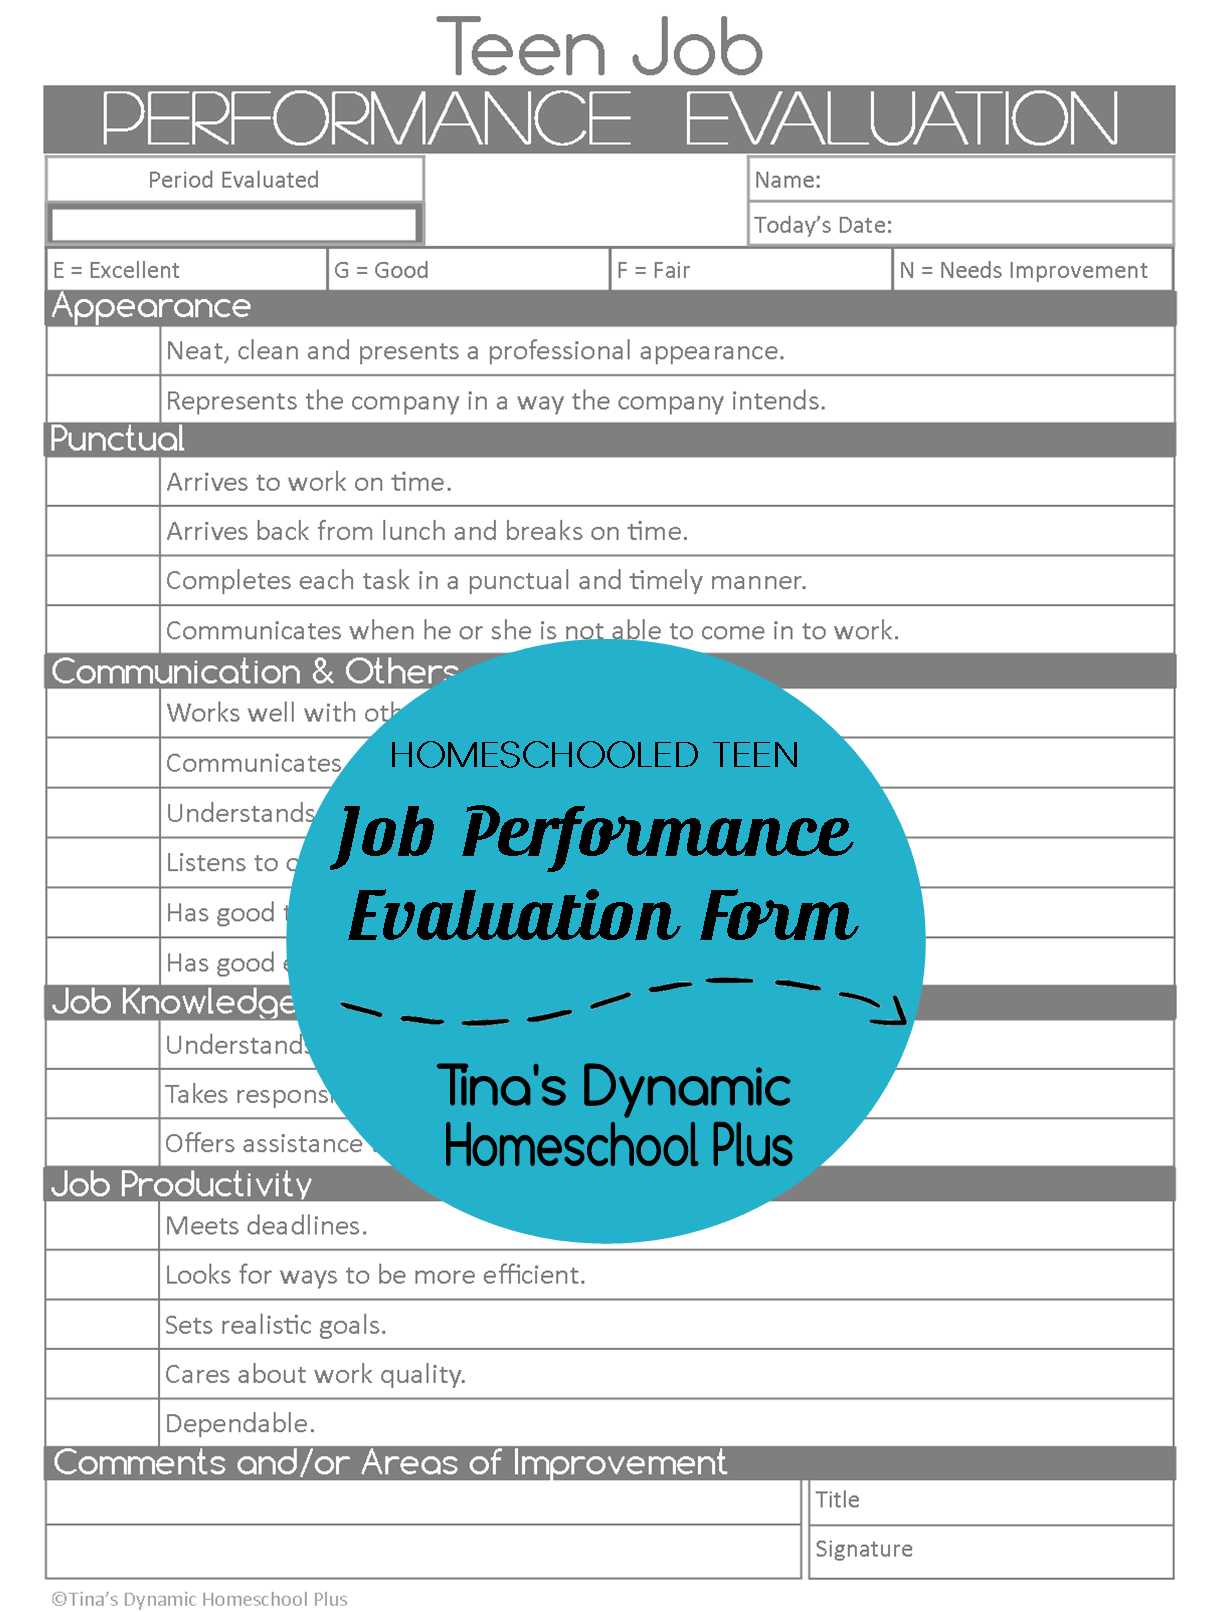 Homeschooled Teen Job Performance Evaluation Form  Homeschool